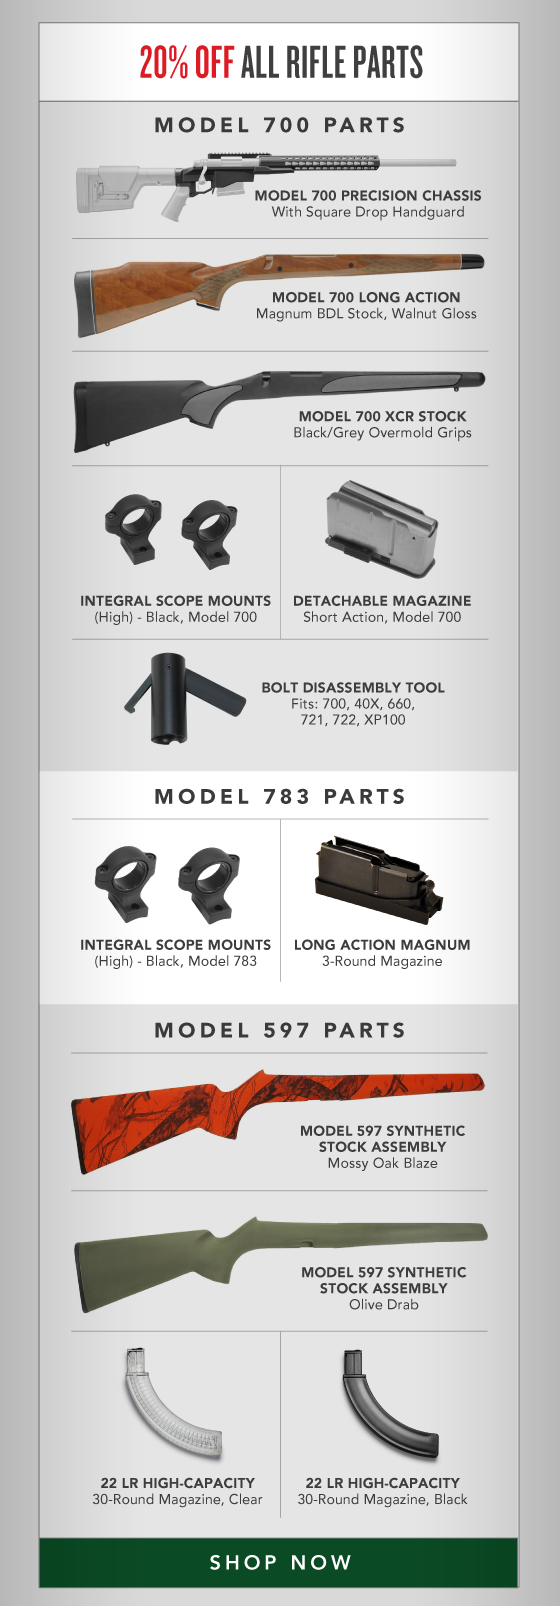 20% OFF All Rifle Parts